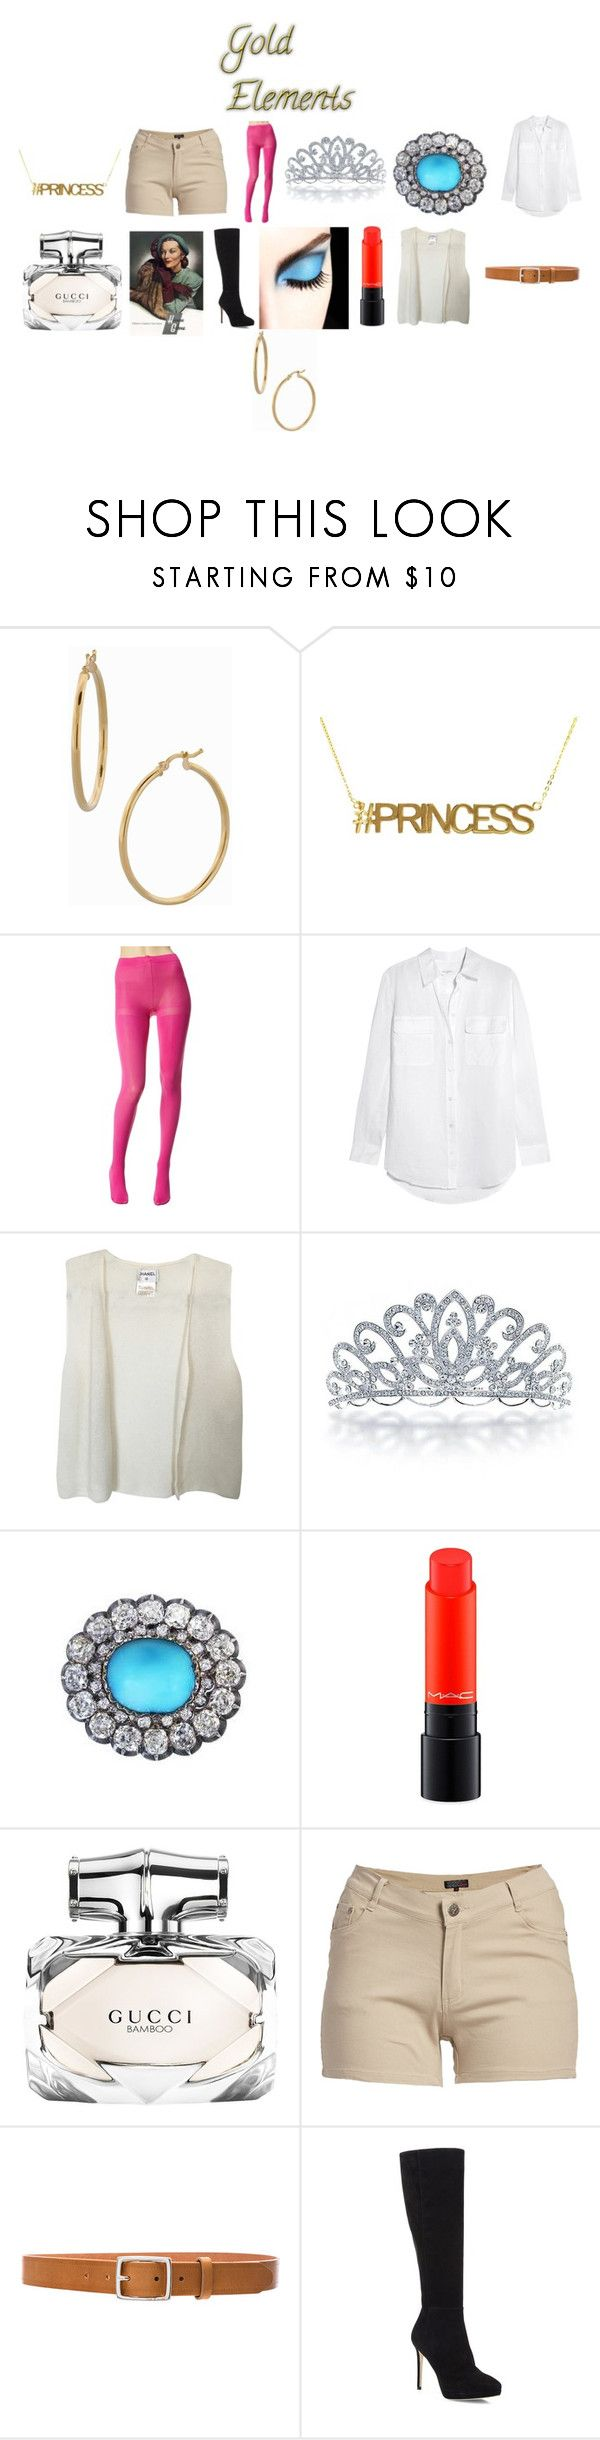 """Show Your Creativity #6 13"" by chrisone ❤ liked on Polyvore featuring Bony Levy, Betsey Johnson, Equipment, Chanel, Bling Jewelry, CORO, MAC Cosmetics, Gucci, 1826 JEANS and rag & bone"